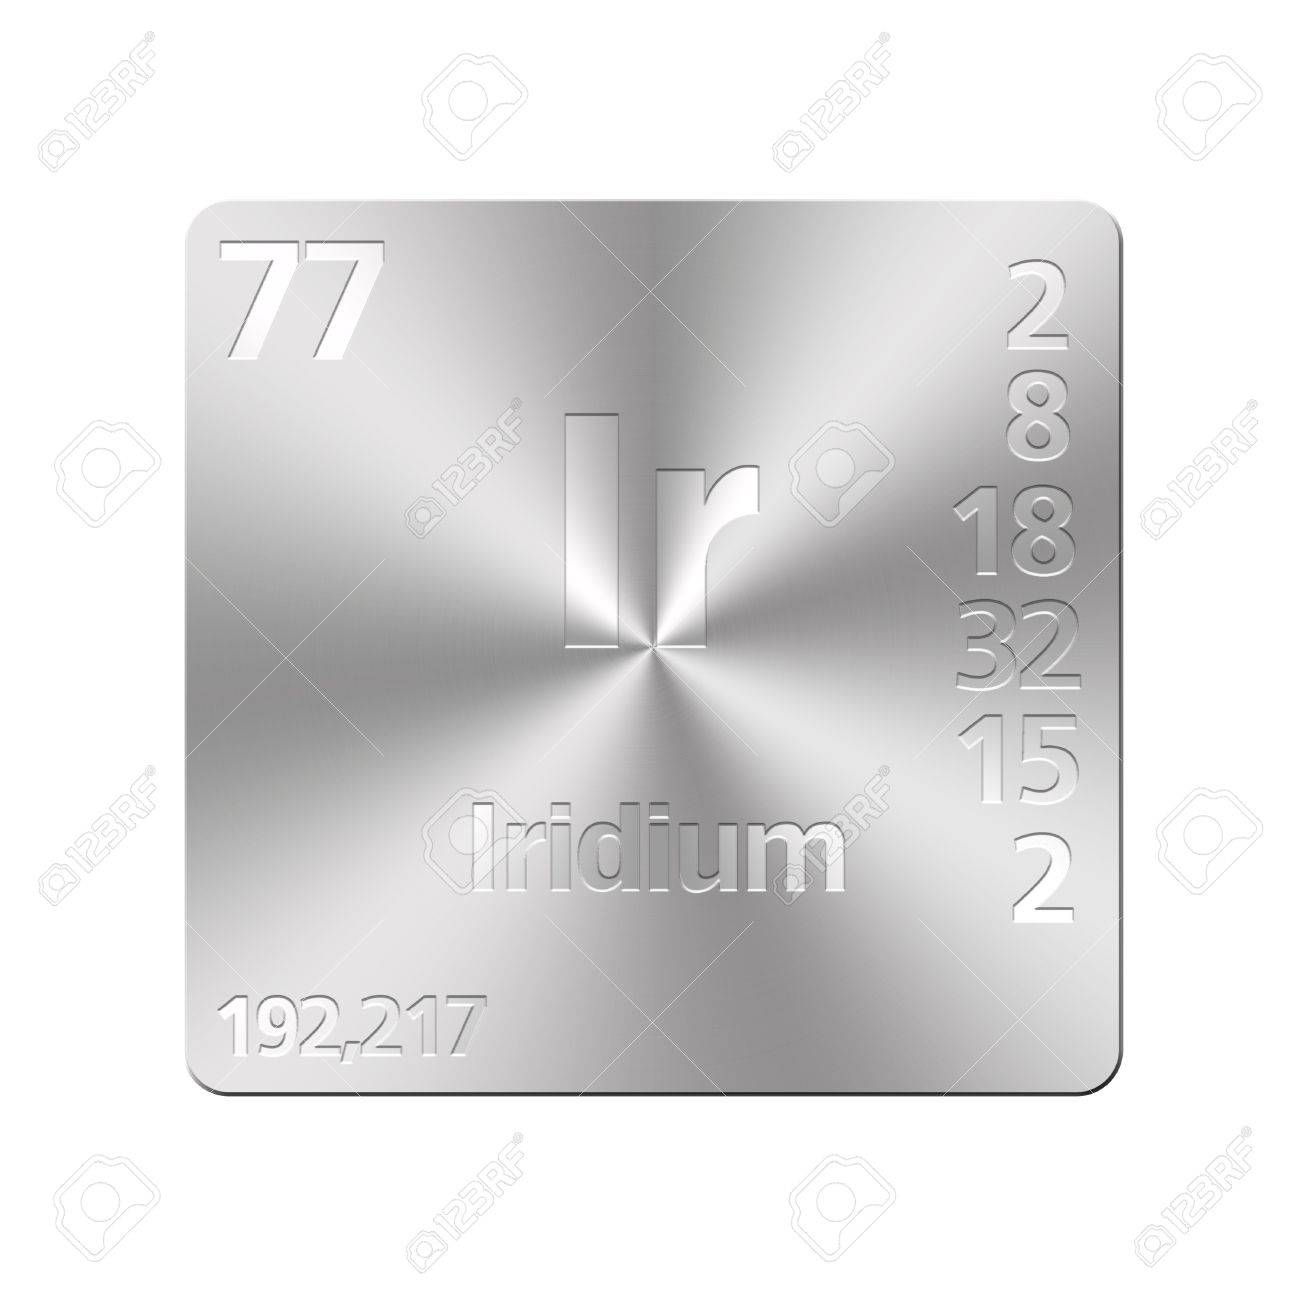 Isolated Metal Button With Periodic Table Iridium Stock Photo